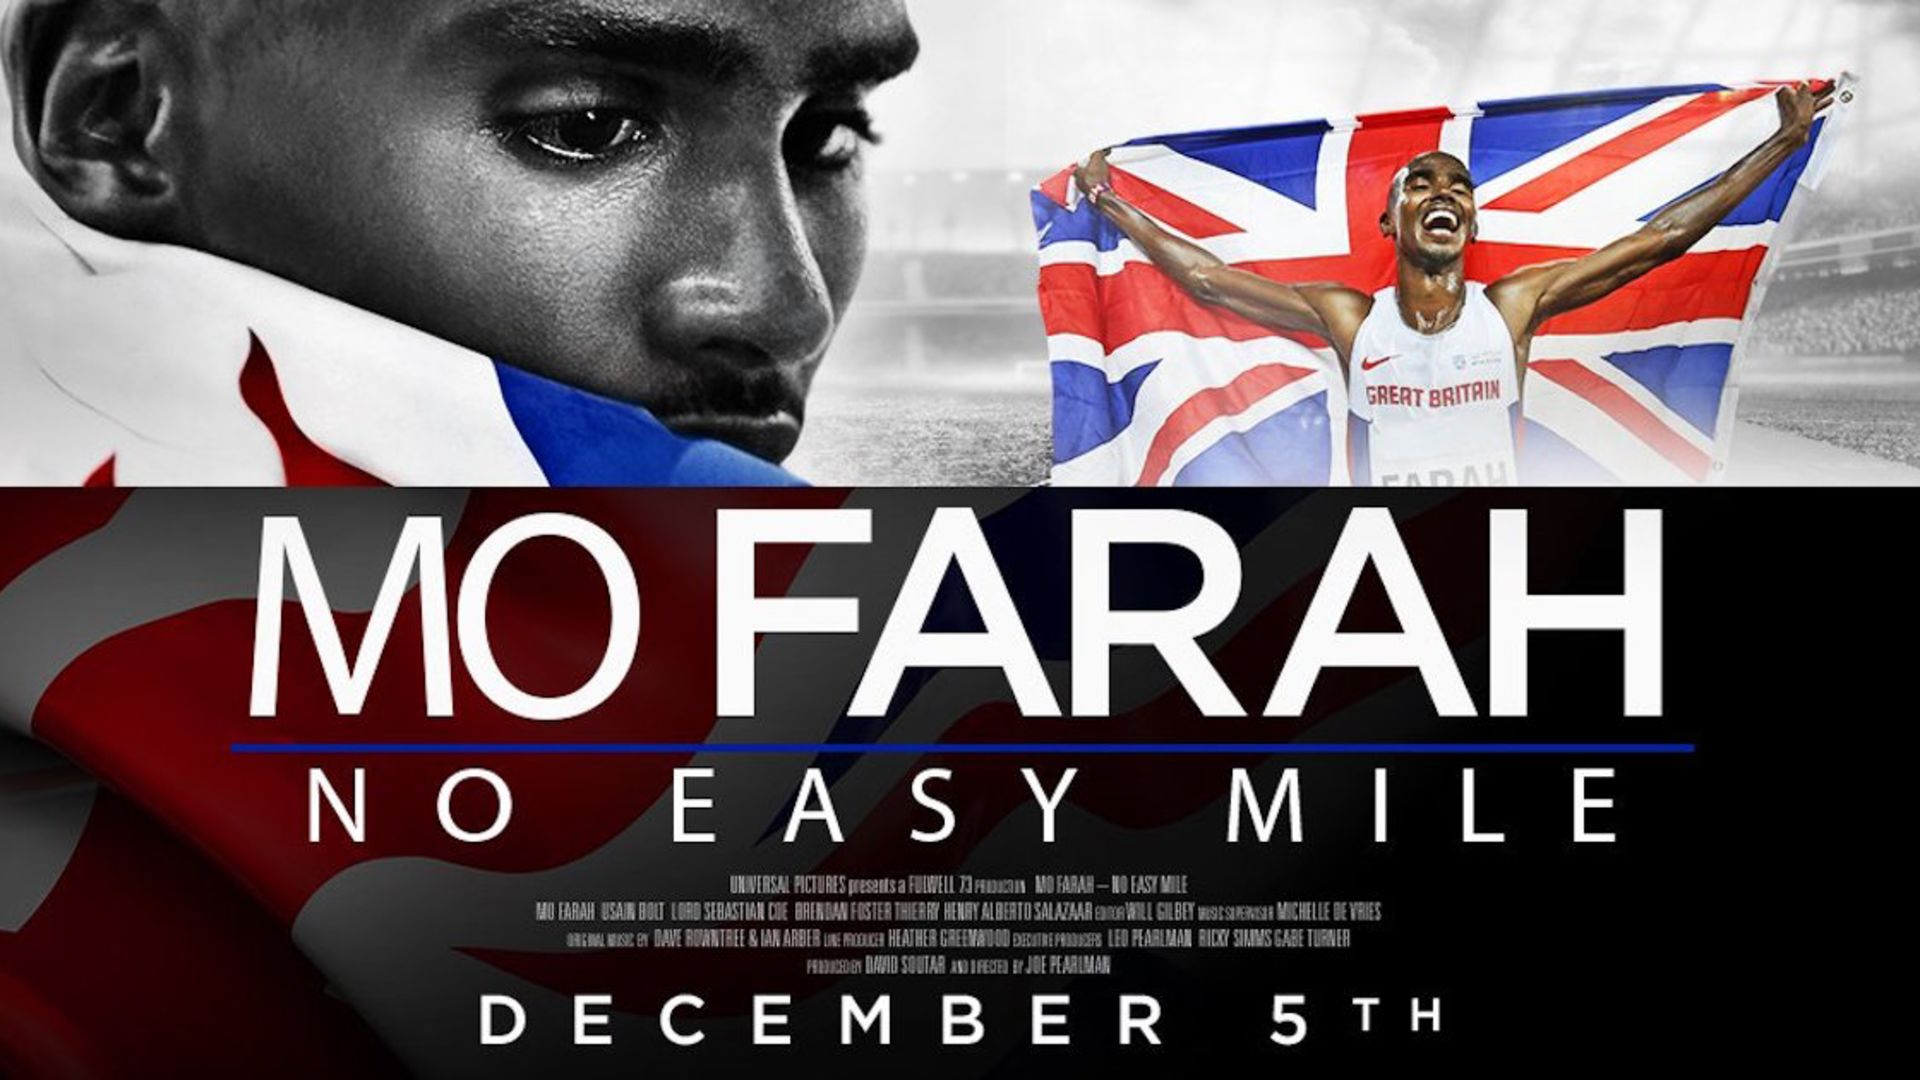 Ian co-scored Mo Farah's movie